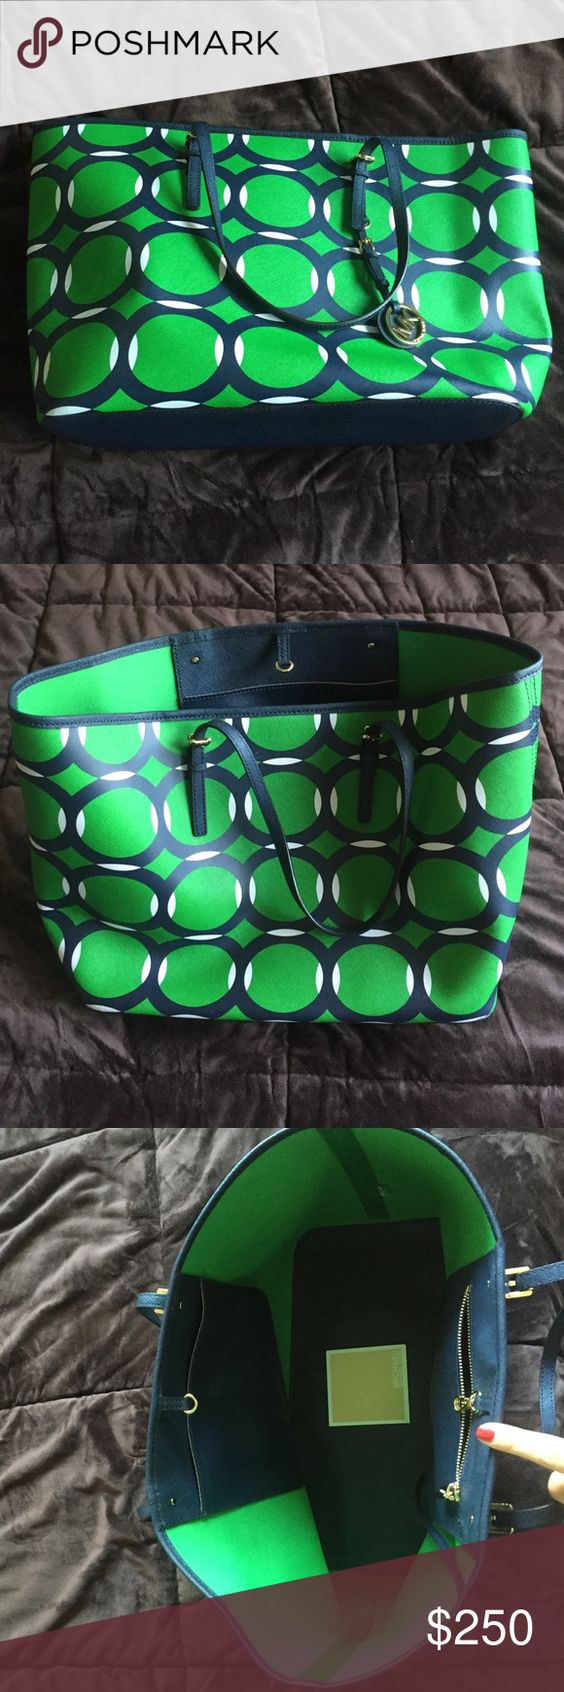 Rare design-Michael Kors navy green and white tote Rare, beautiful design-Michael Kors navy green and white tote. Measures 18.5 inches across, 11.5 inches deep. Like new condition. Great find!  You'll certainly get compliments! MICHAEL Michael Kors Bags Totes